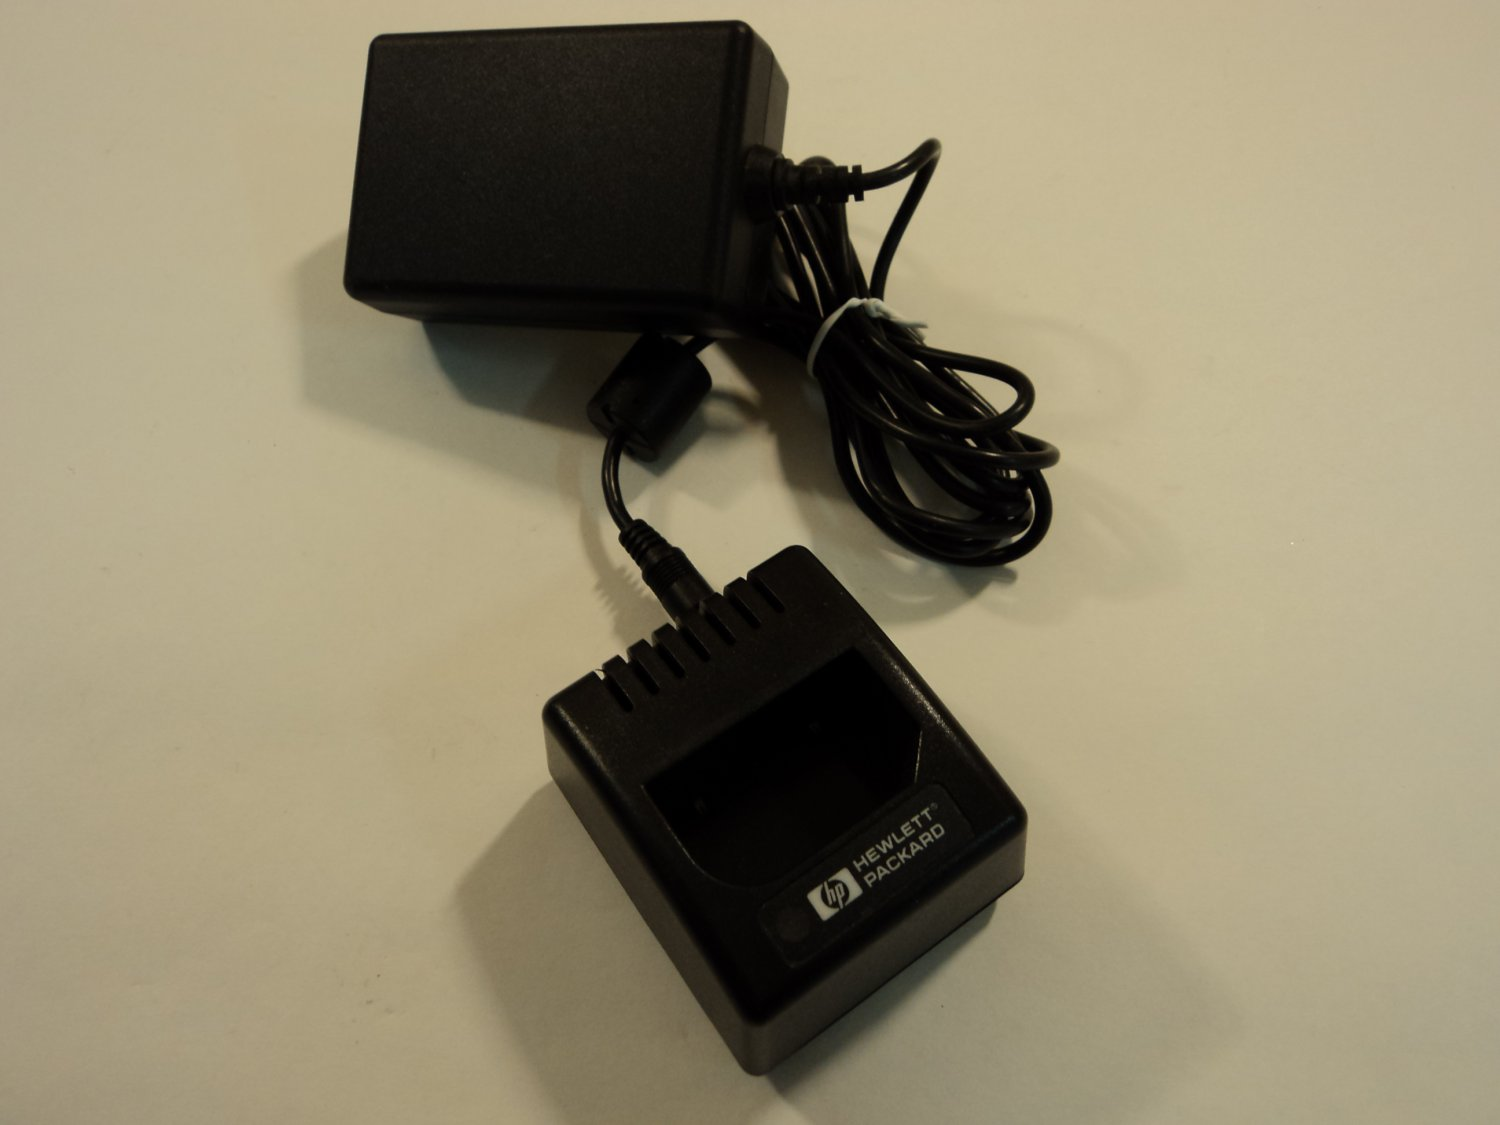 HP Lithium Battery Charger Power Adaptor 9V 1333mA C6324-61600 C6326-66401